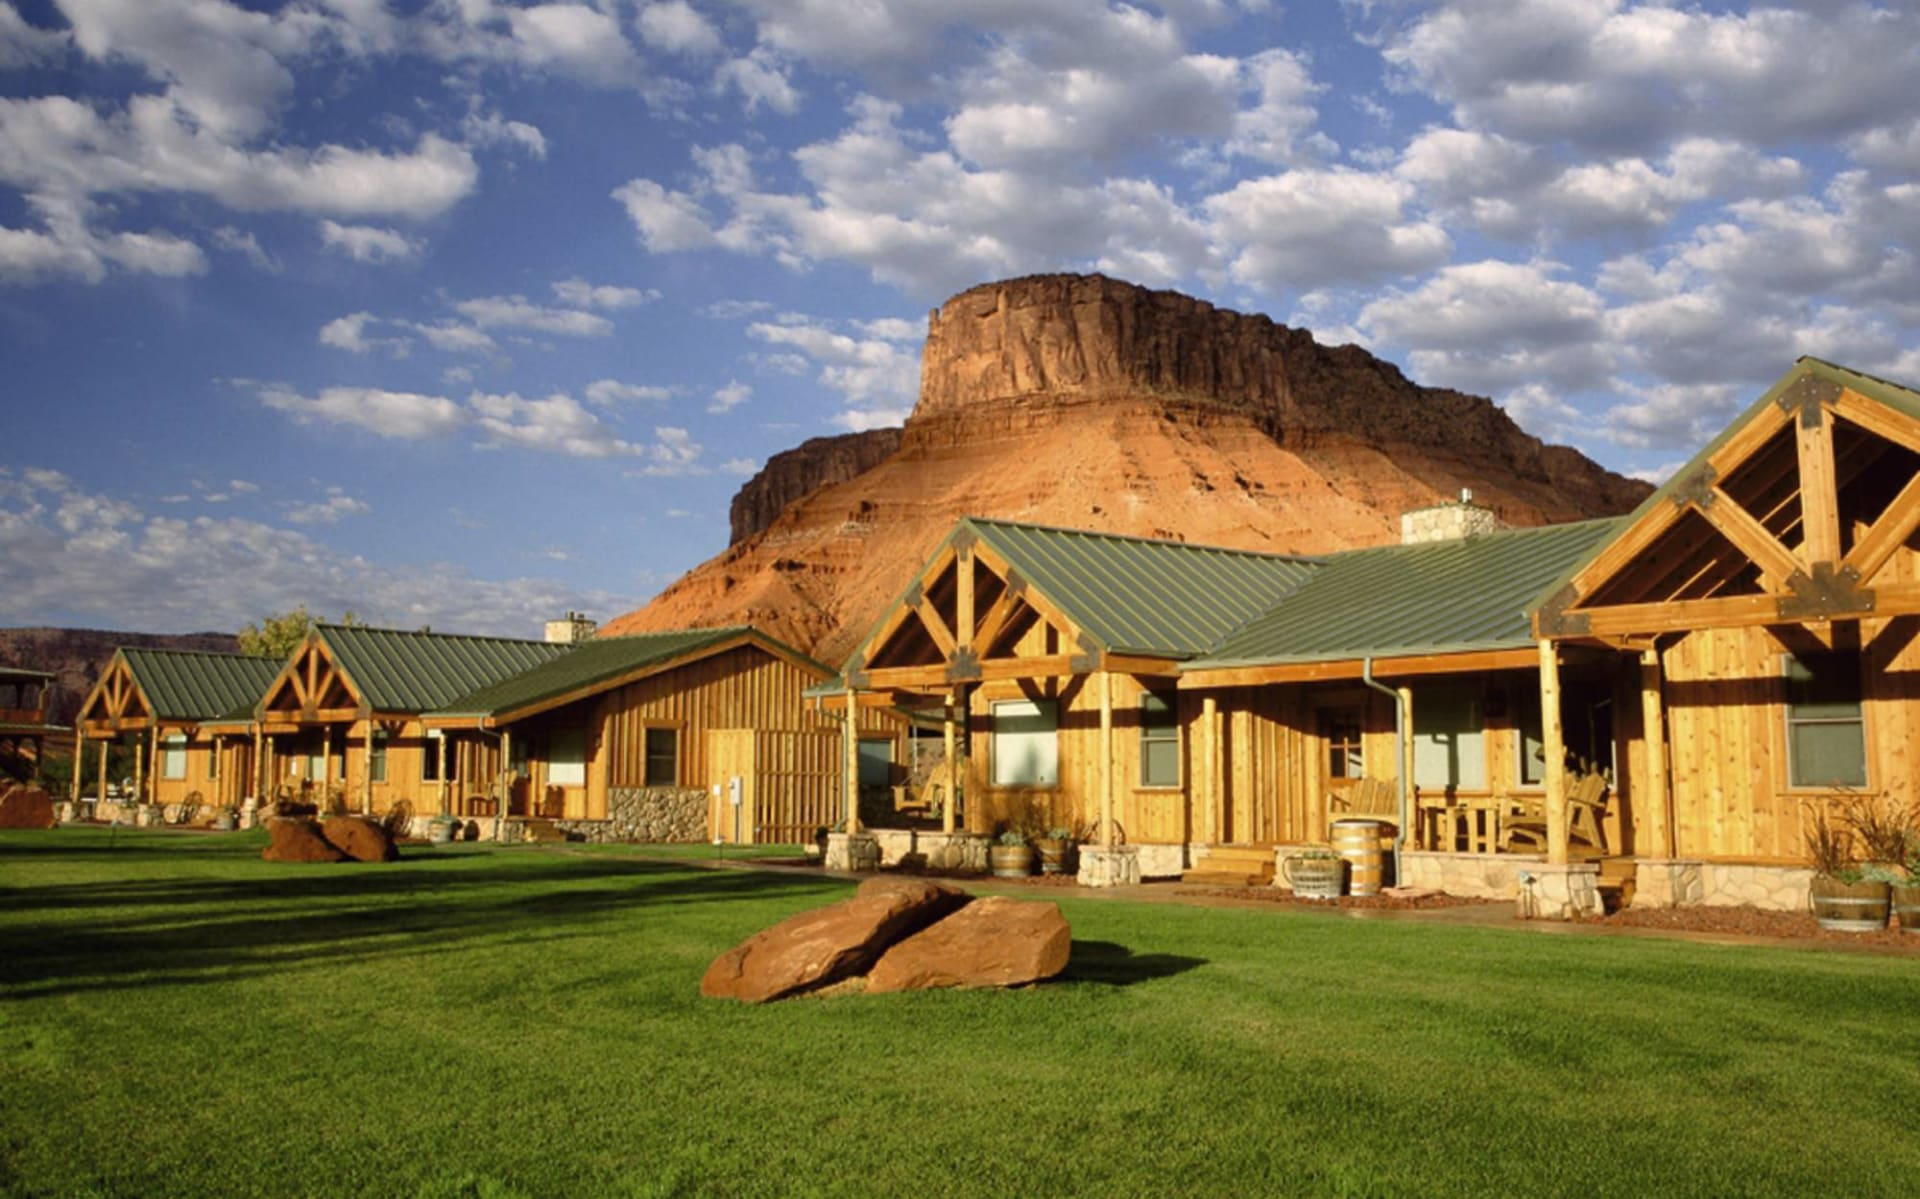 Sorrel River Ranch in Moab: exterior sorrel river ranch holzhäuser berge